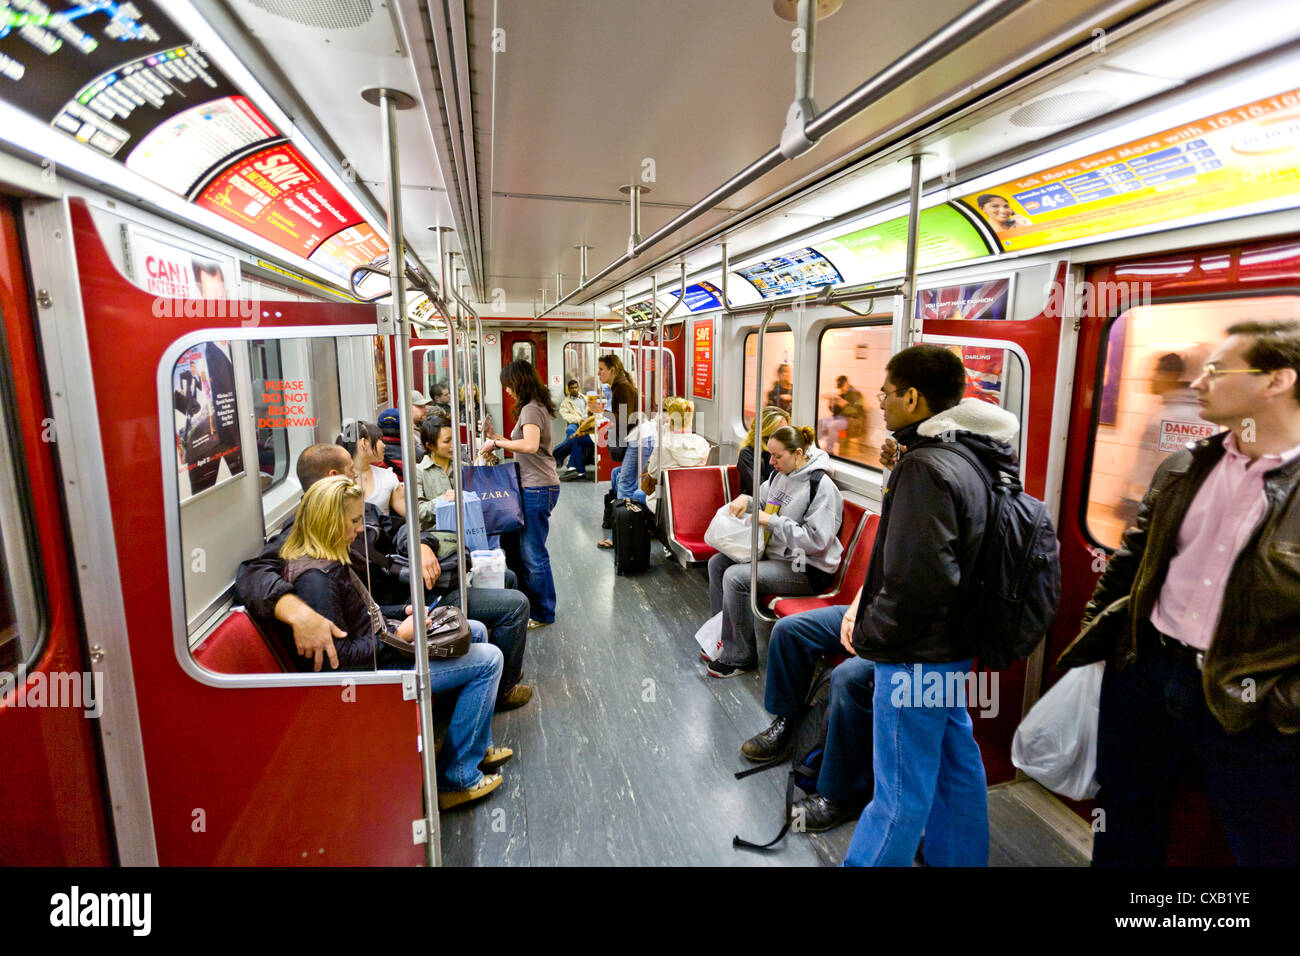 Interior of subway train, Toronto, Ontario, Canada, North America - Stock Image